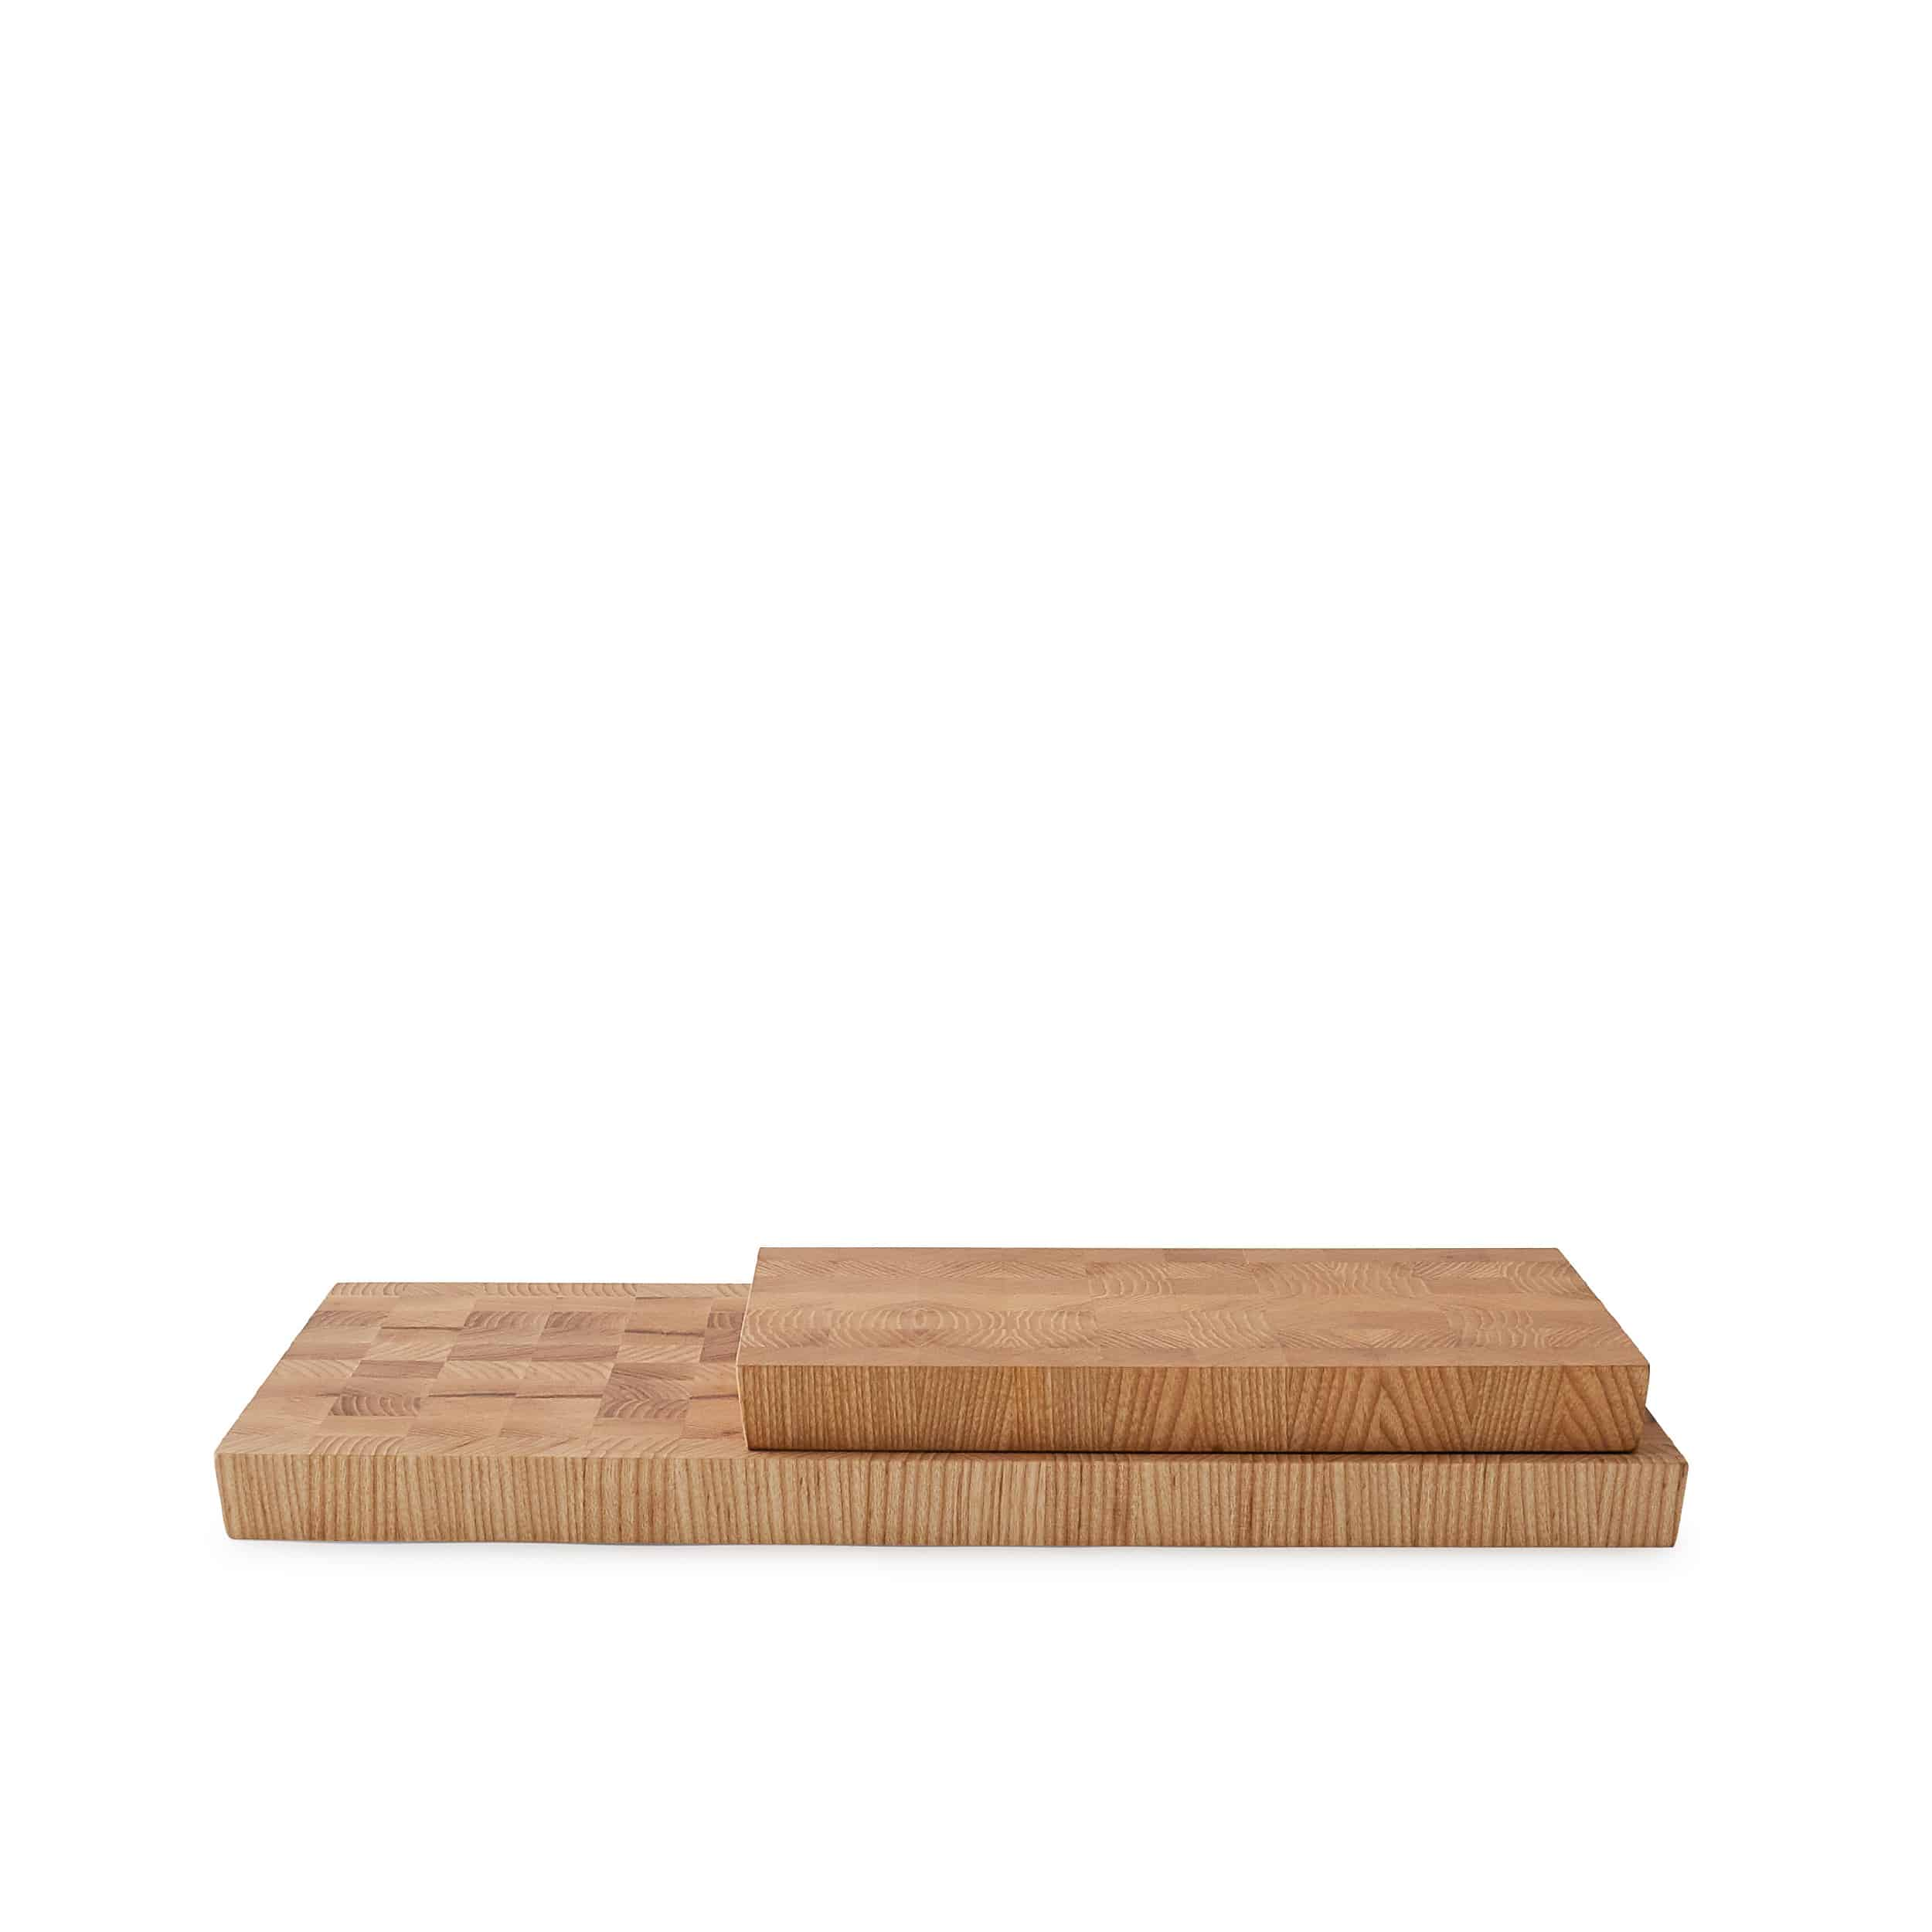 End-Grain Chopping Board by Another Country